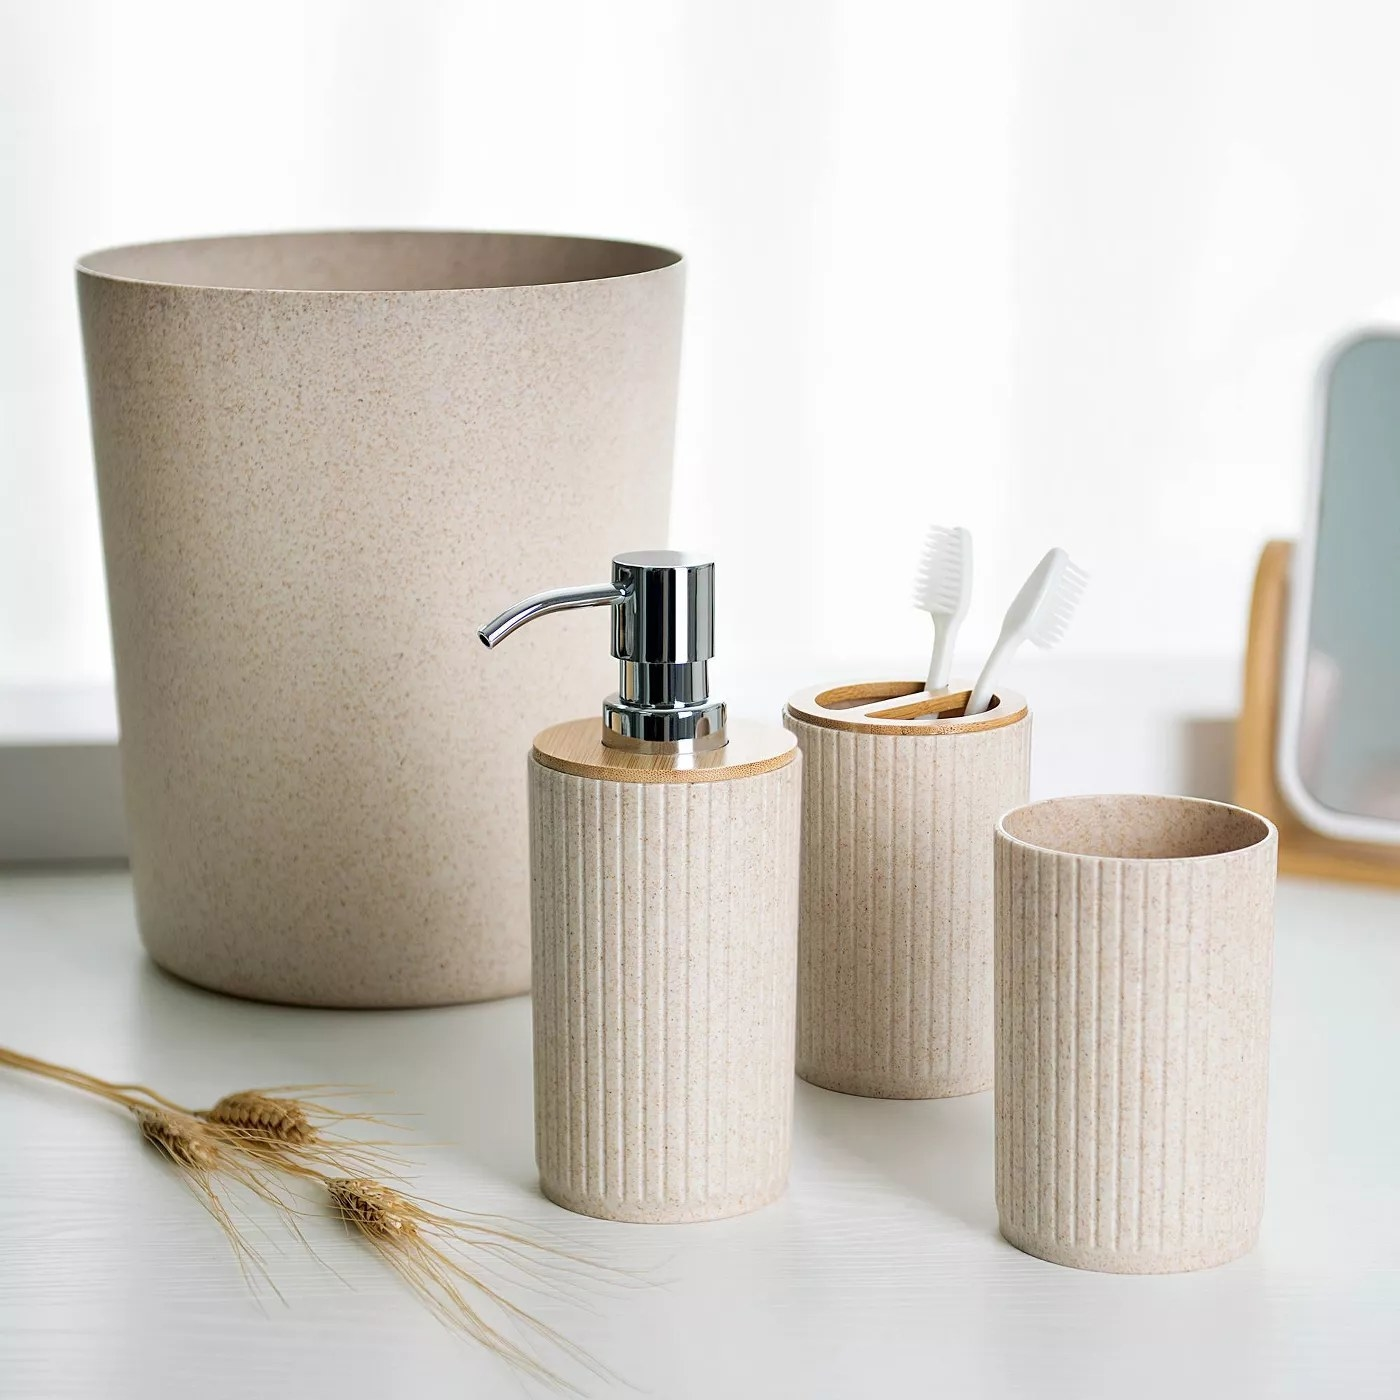 A beige wastebasket, lotion pump, cup, and toothbrush holder